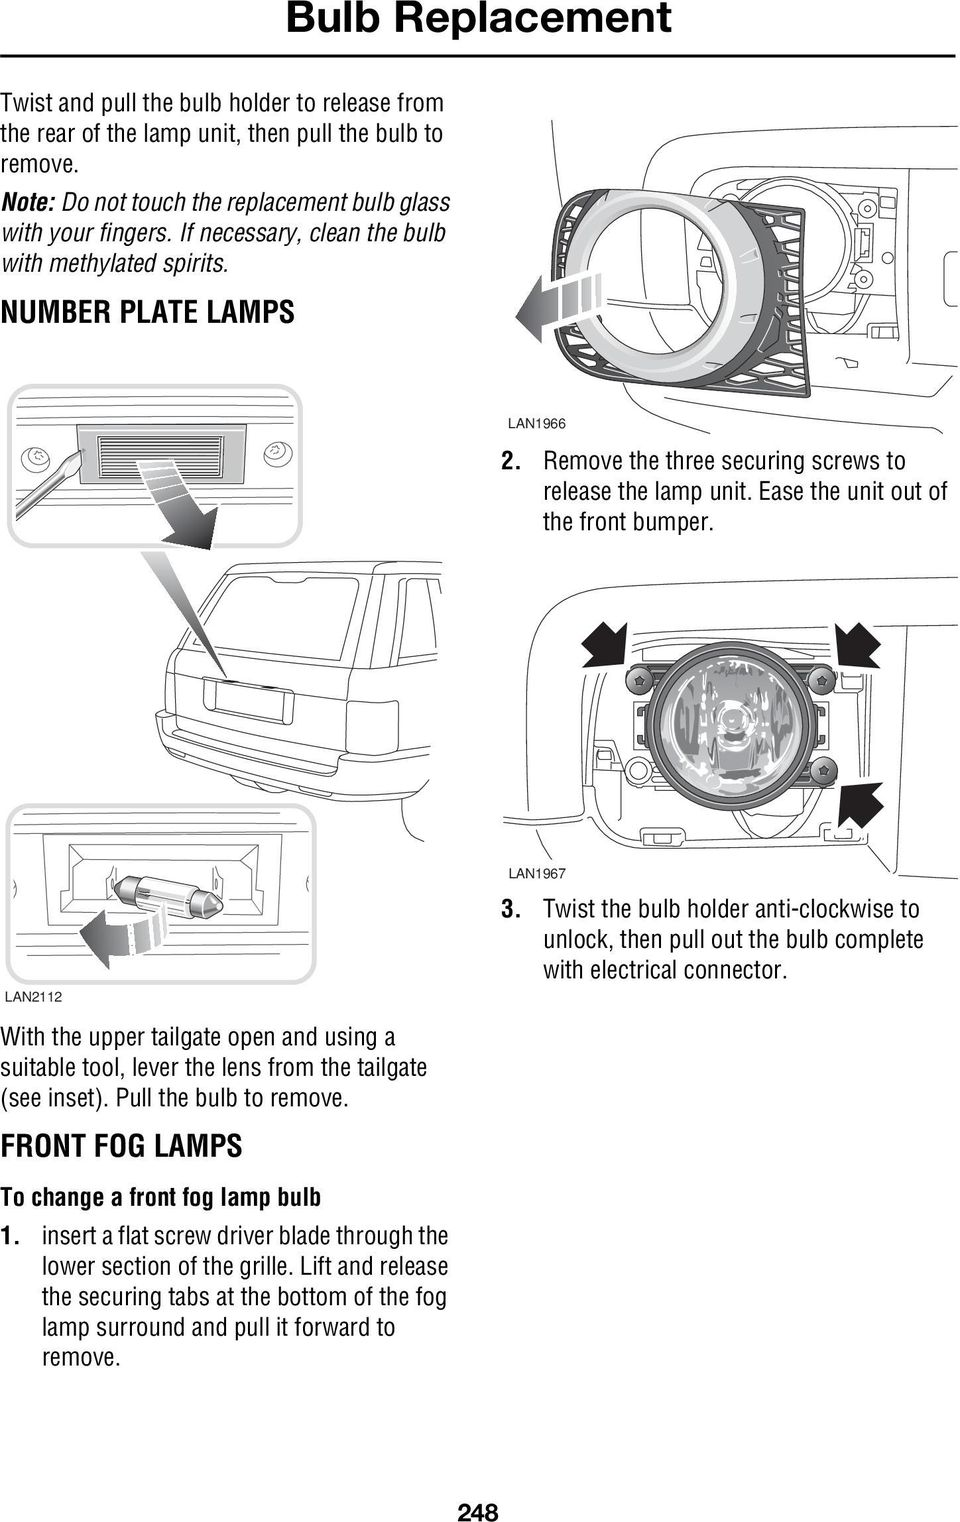 Bulb Replacement Replacing Bulbs Warning Pdf Skoda Fabia Vrs Fuse Box Diagram Twist The Holder Anti Clockwise To Unlock Then Pull Out Complete